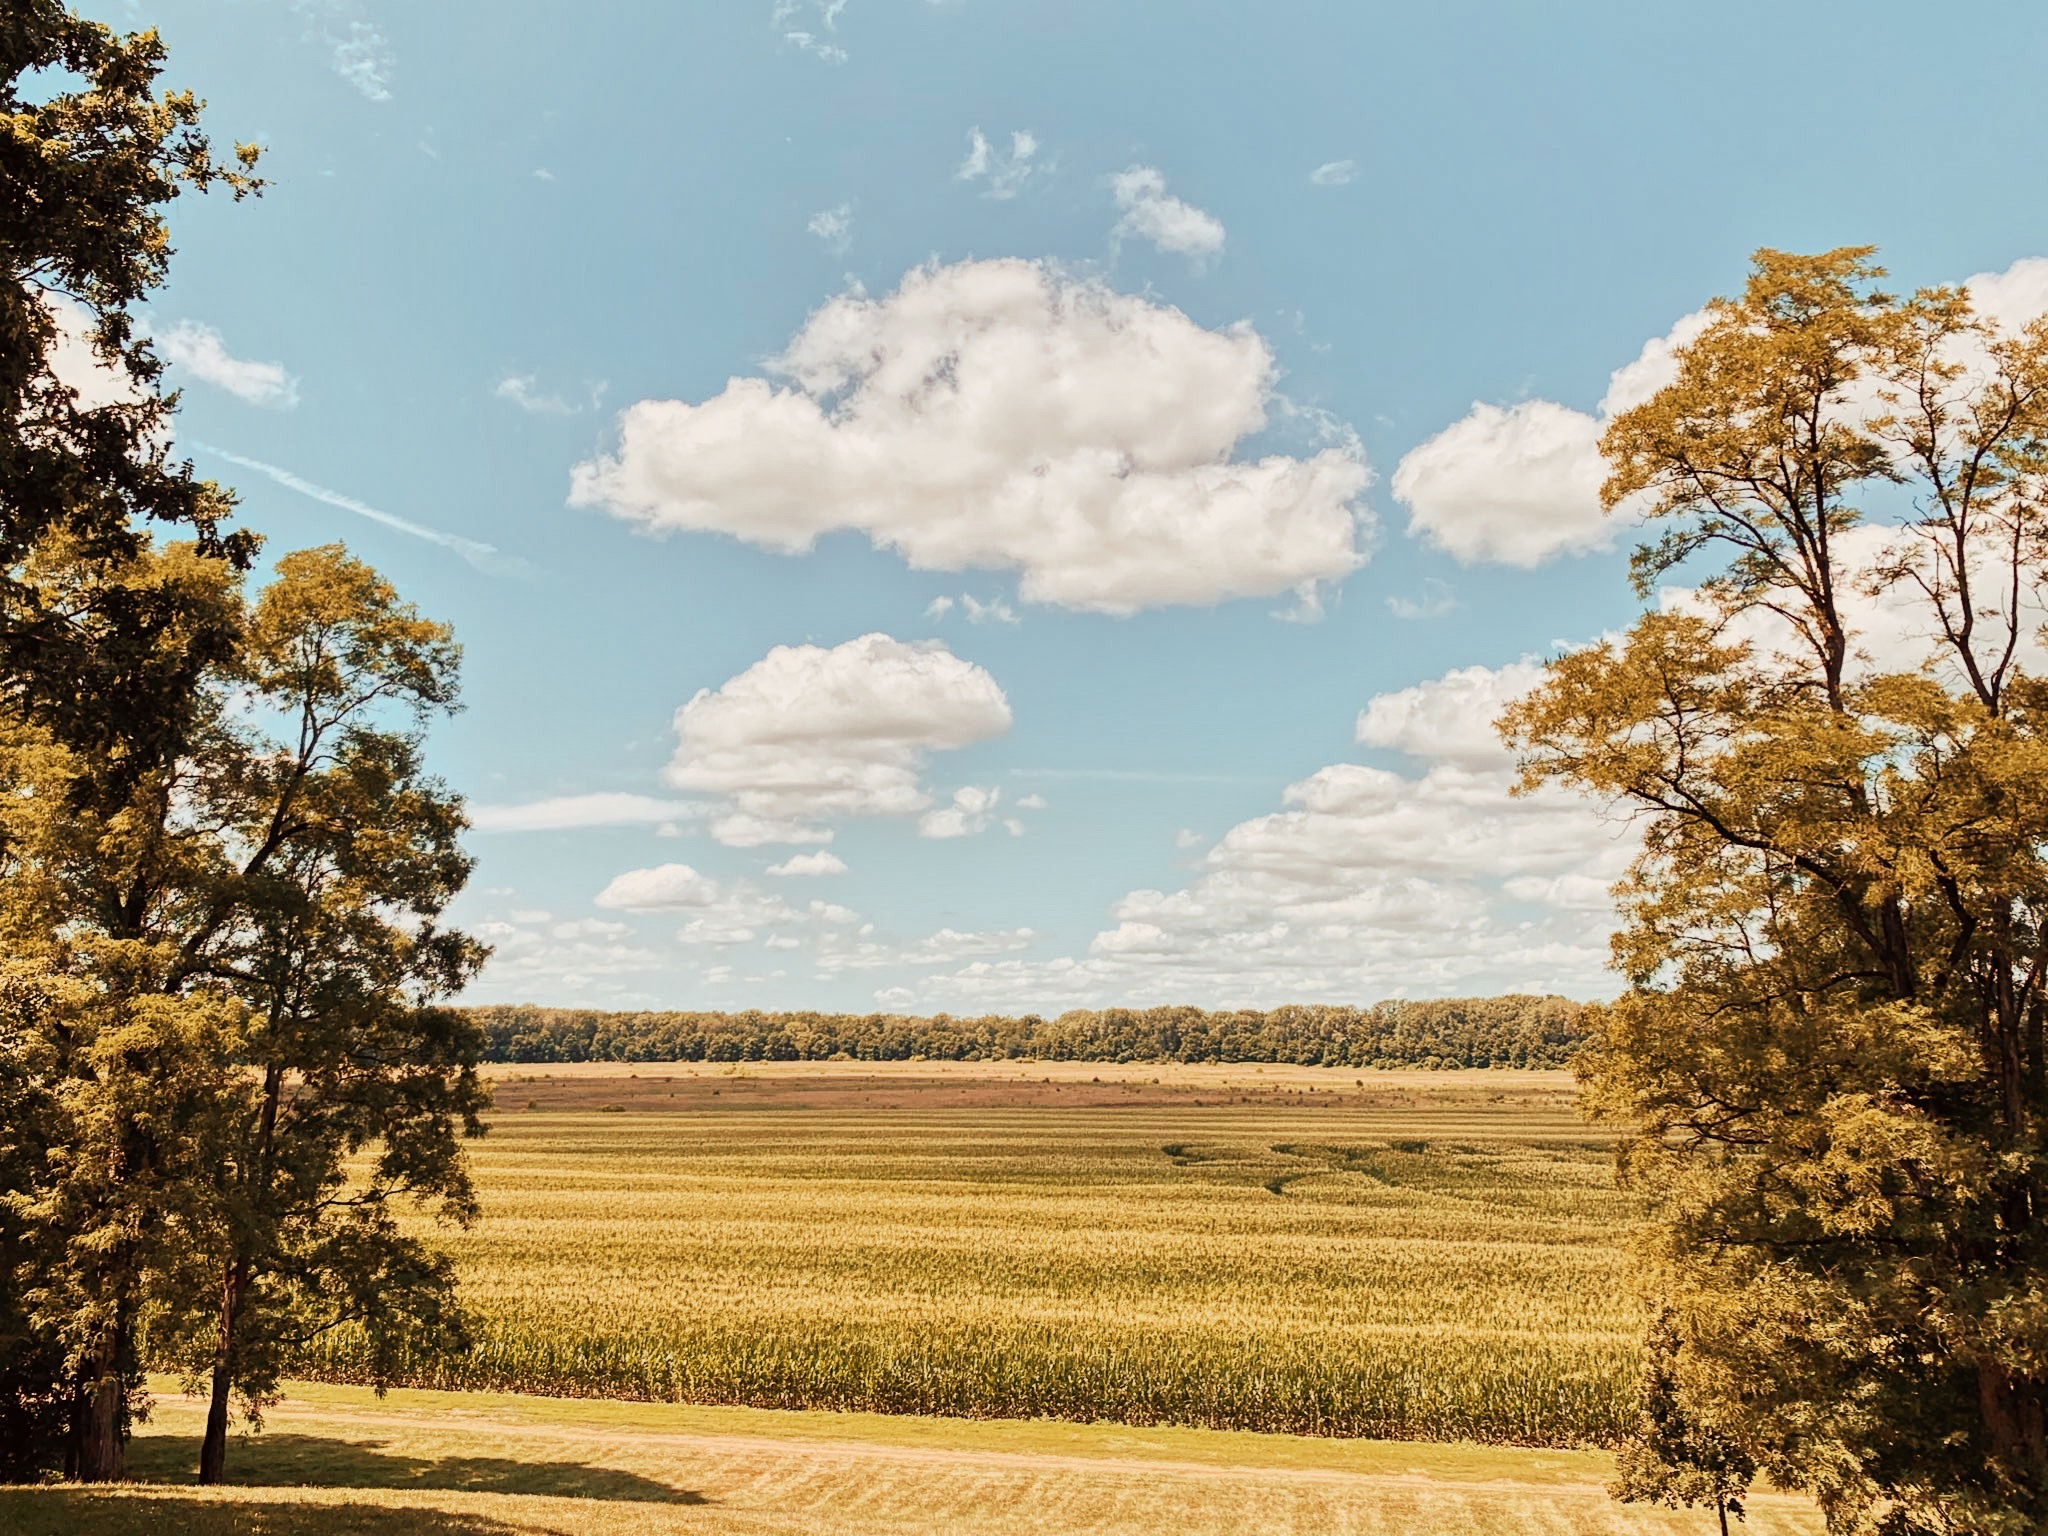 a far away photo of a corn field with trees on the side